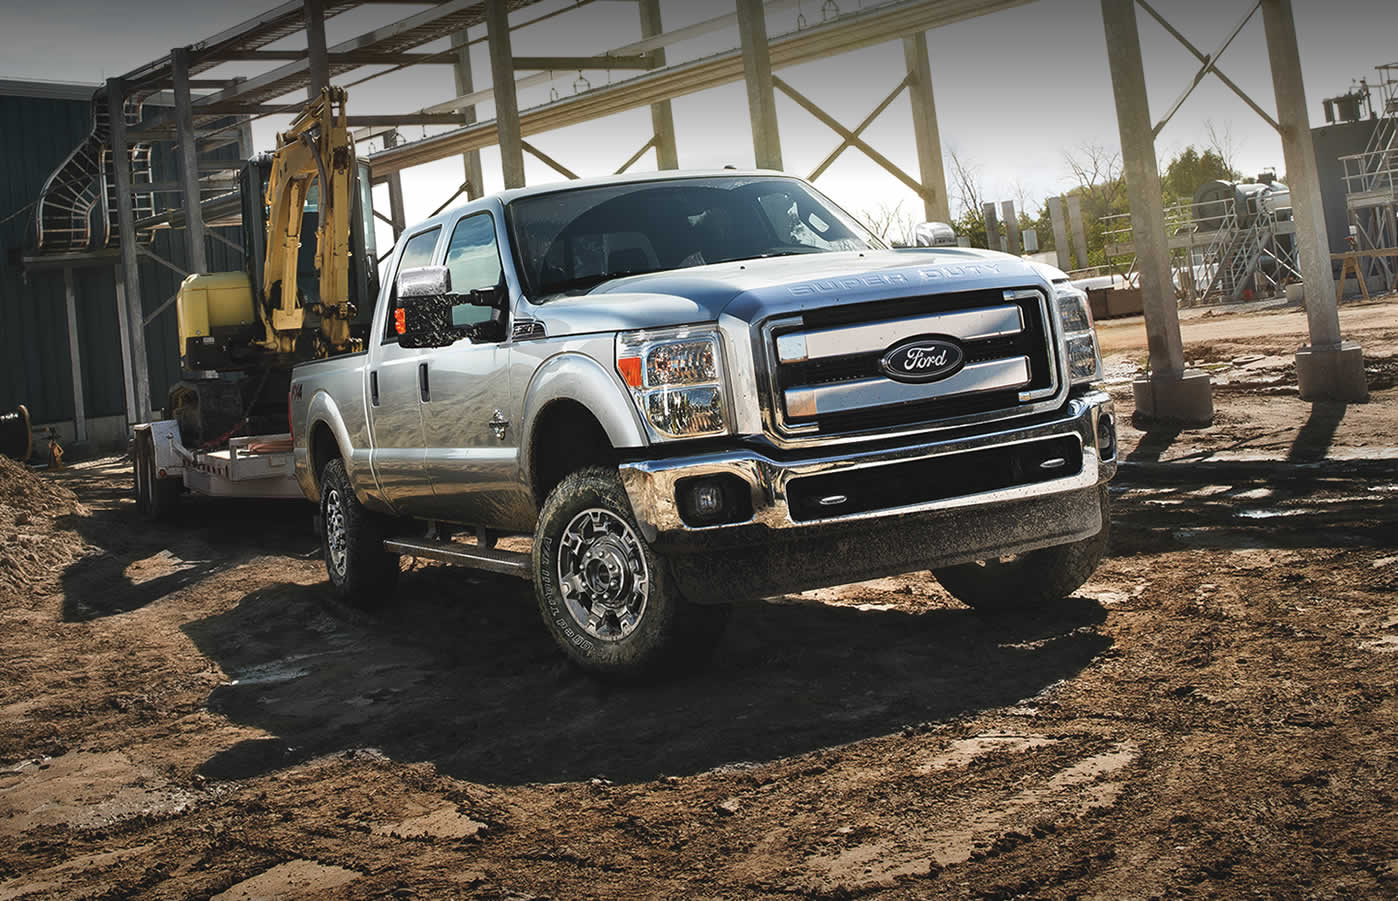 Wallpaper Blink - Ford F-250 Wallpaper HD 25 - 1398 X 901 for ...